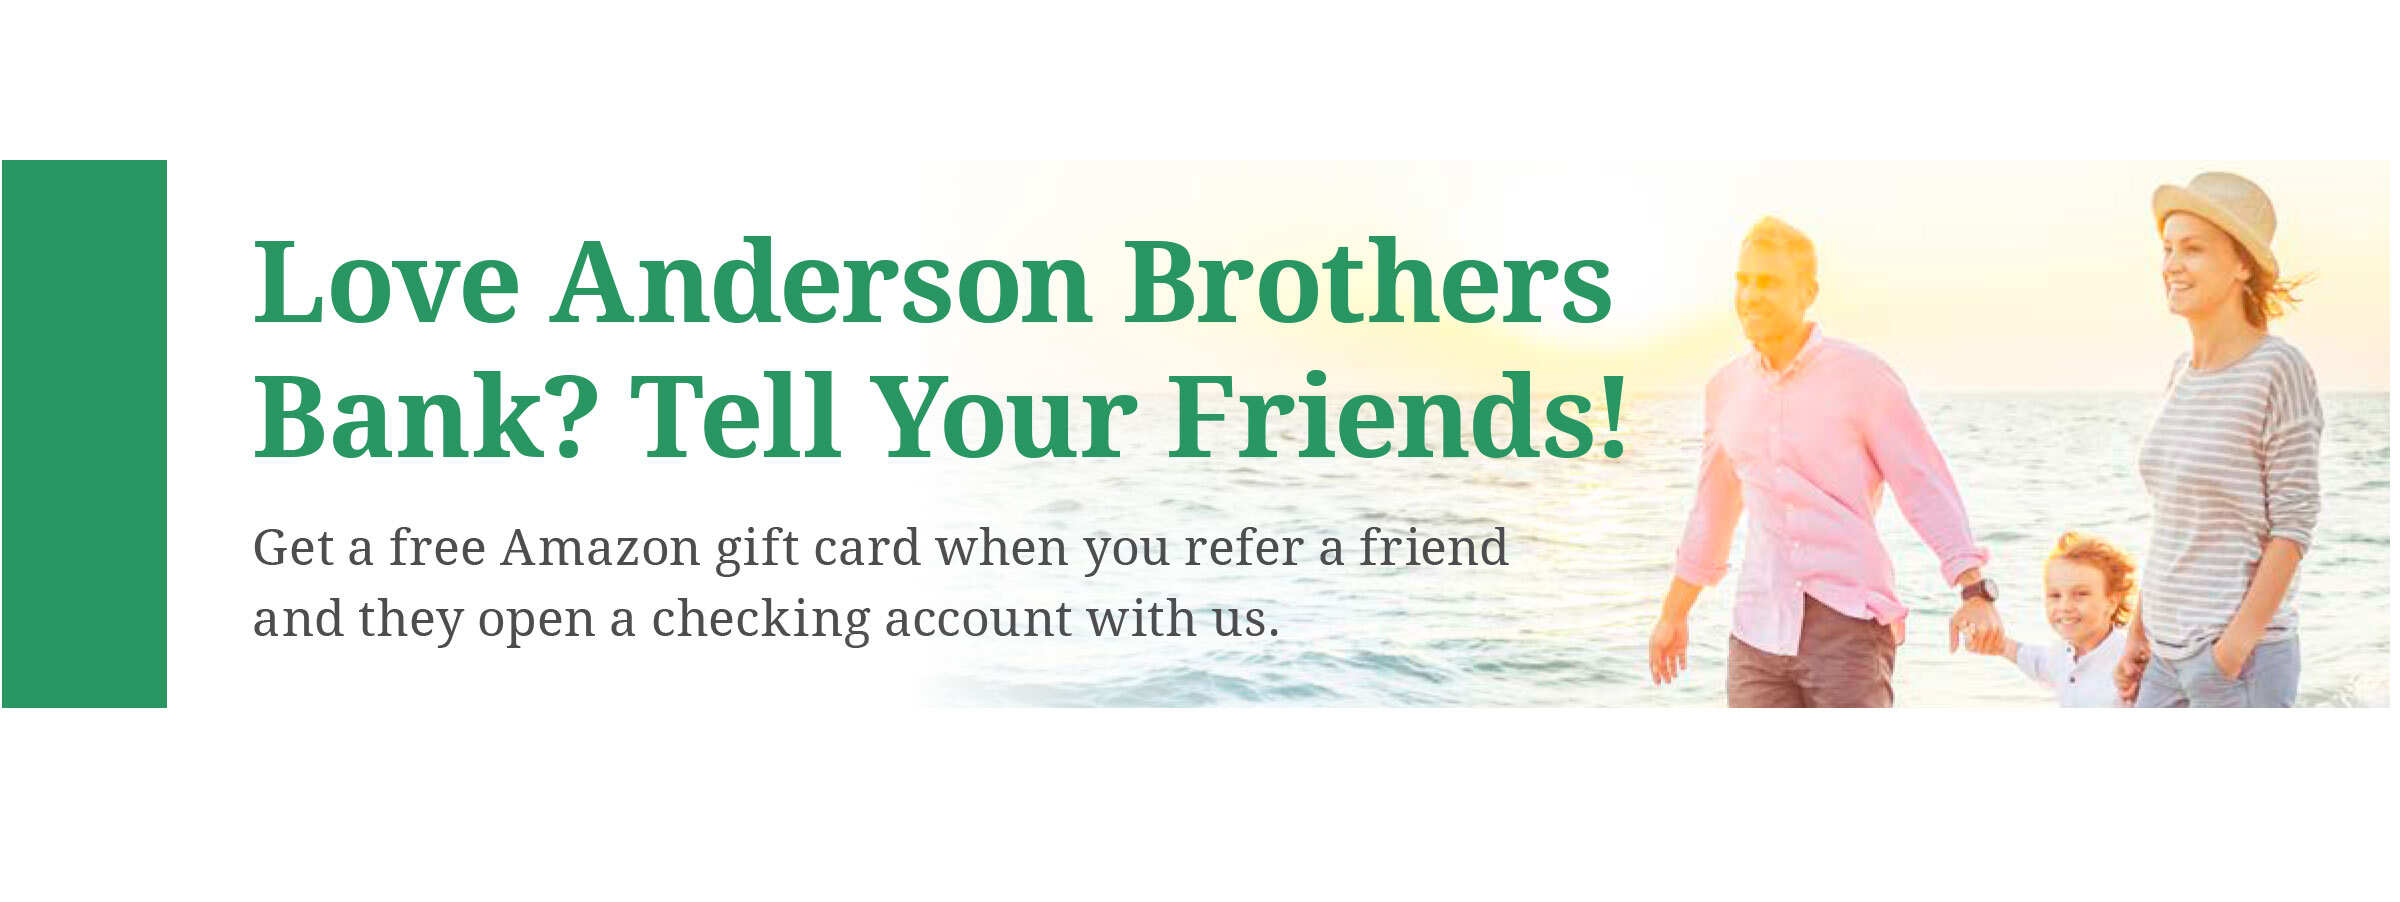 Referral message for ABB. Tell your friends about ABB and get a gift card.